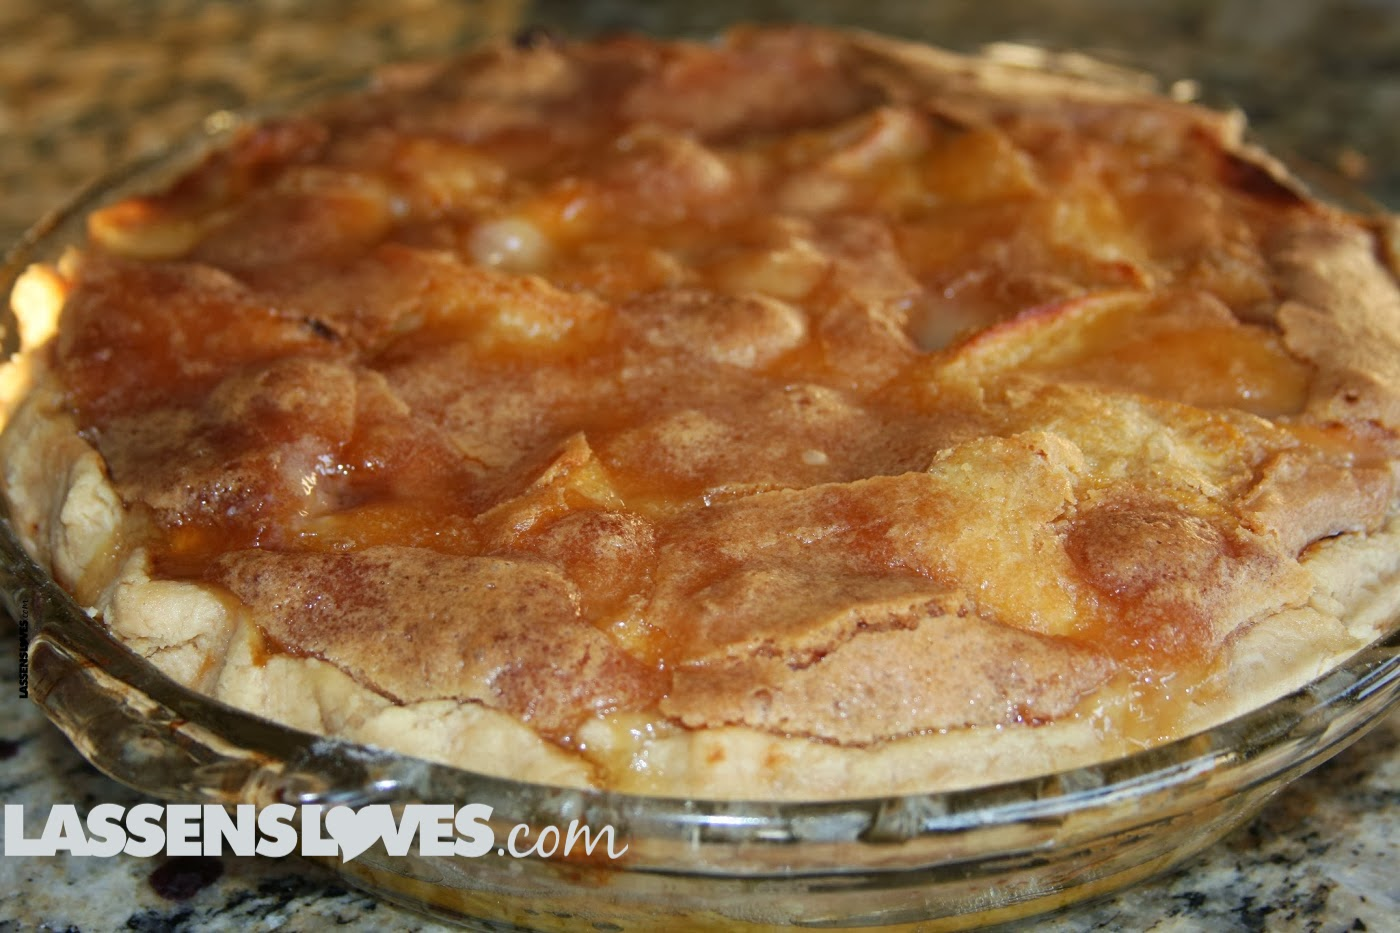 lassensloves.com, Lassen's, Lassens, Peach+Pie+Recipe, Pie+Crust+Recipe